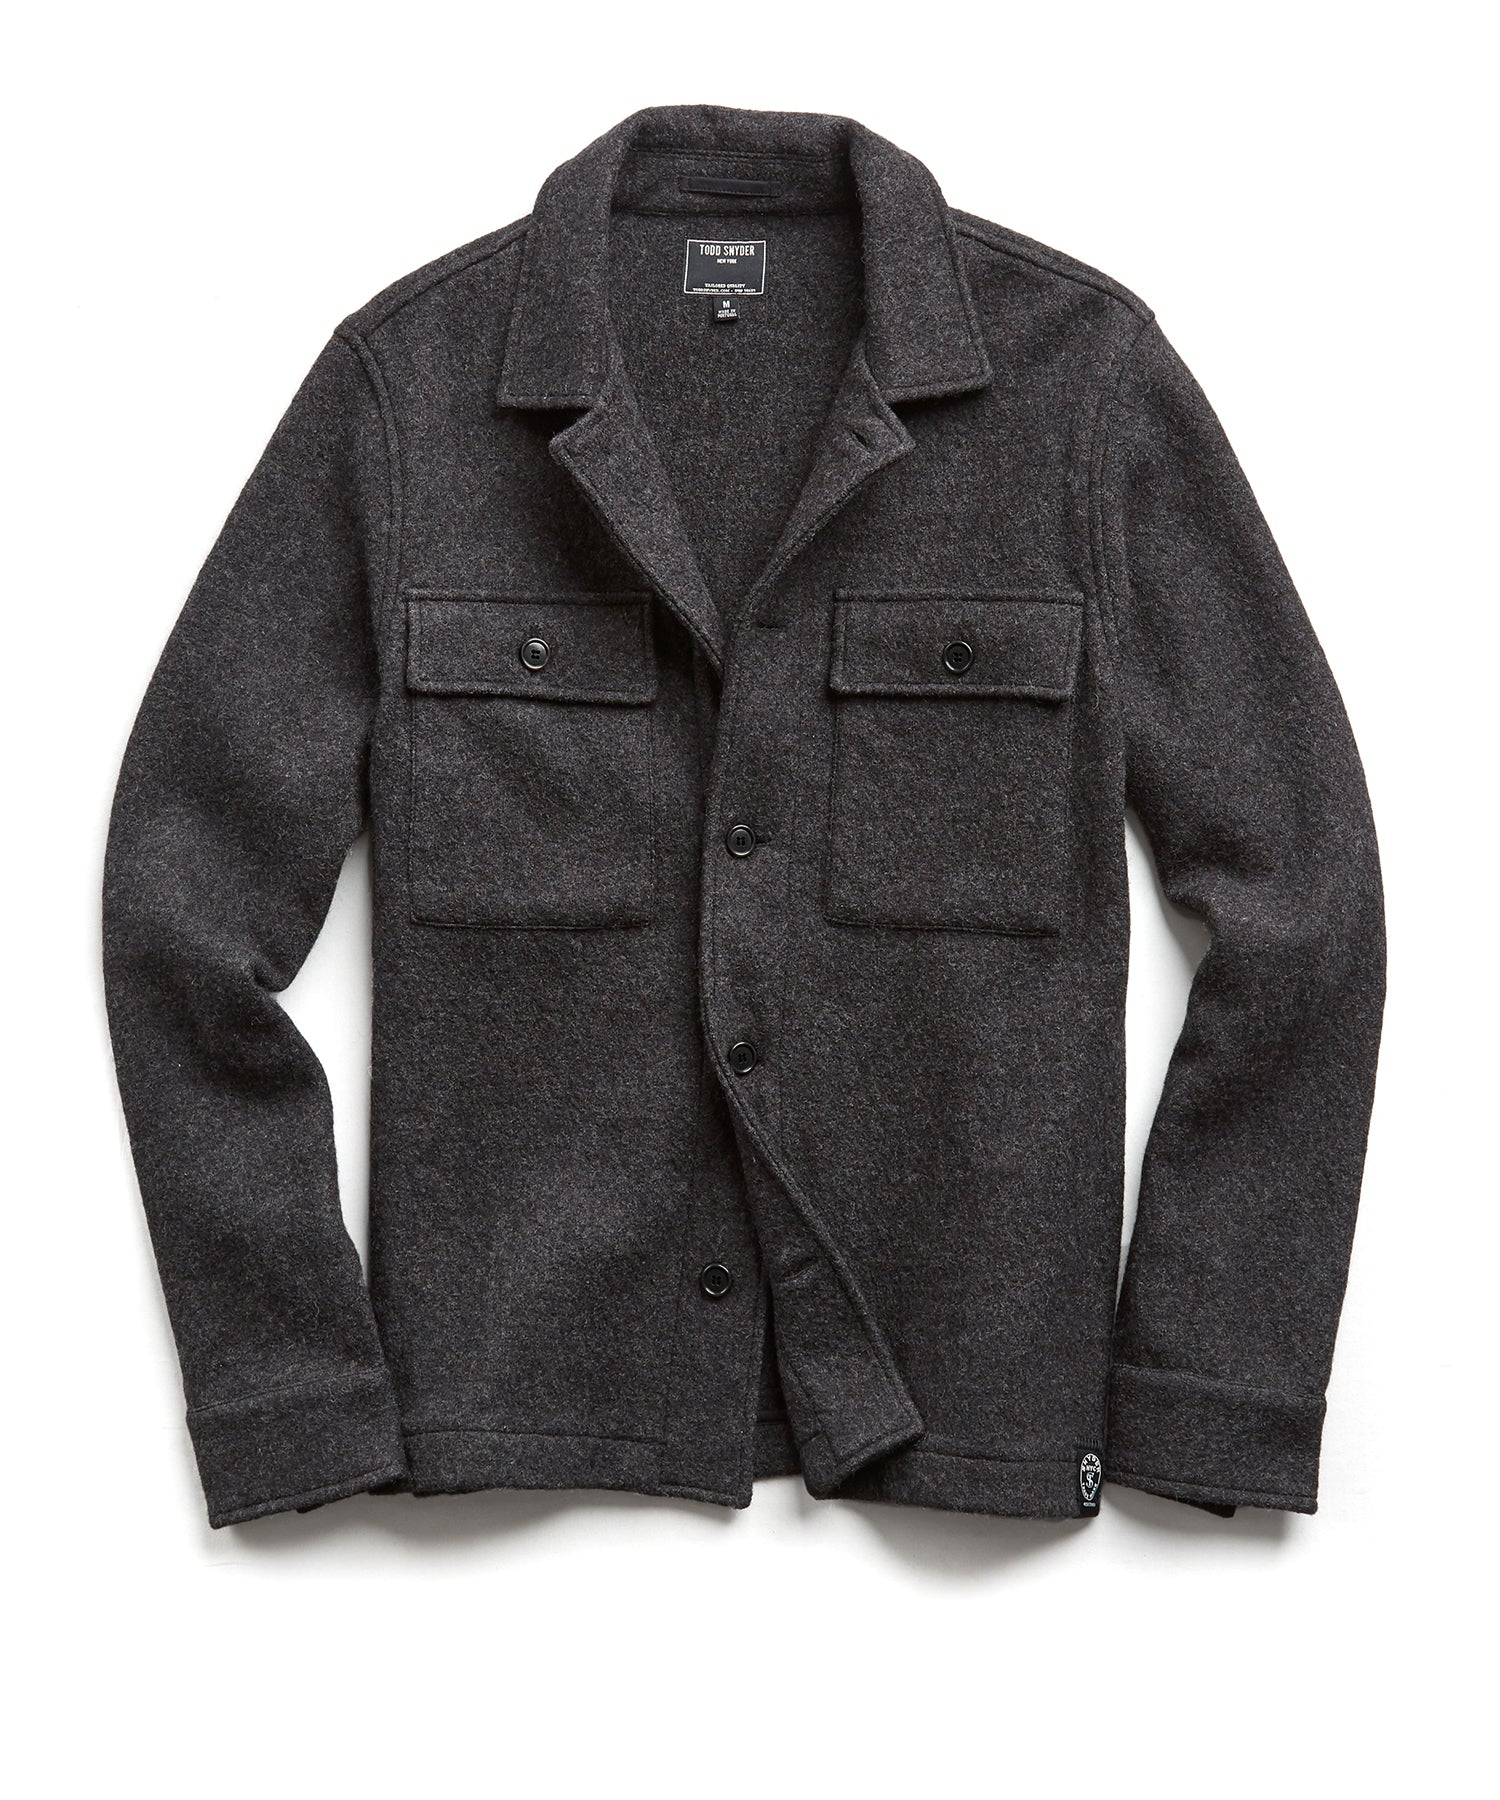 Italian Boucle Knit Chore Coat in Charcoal